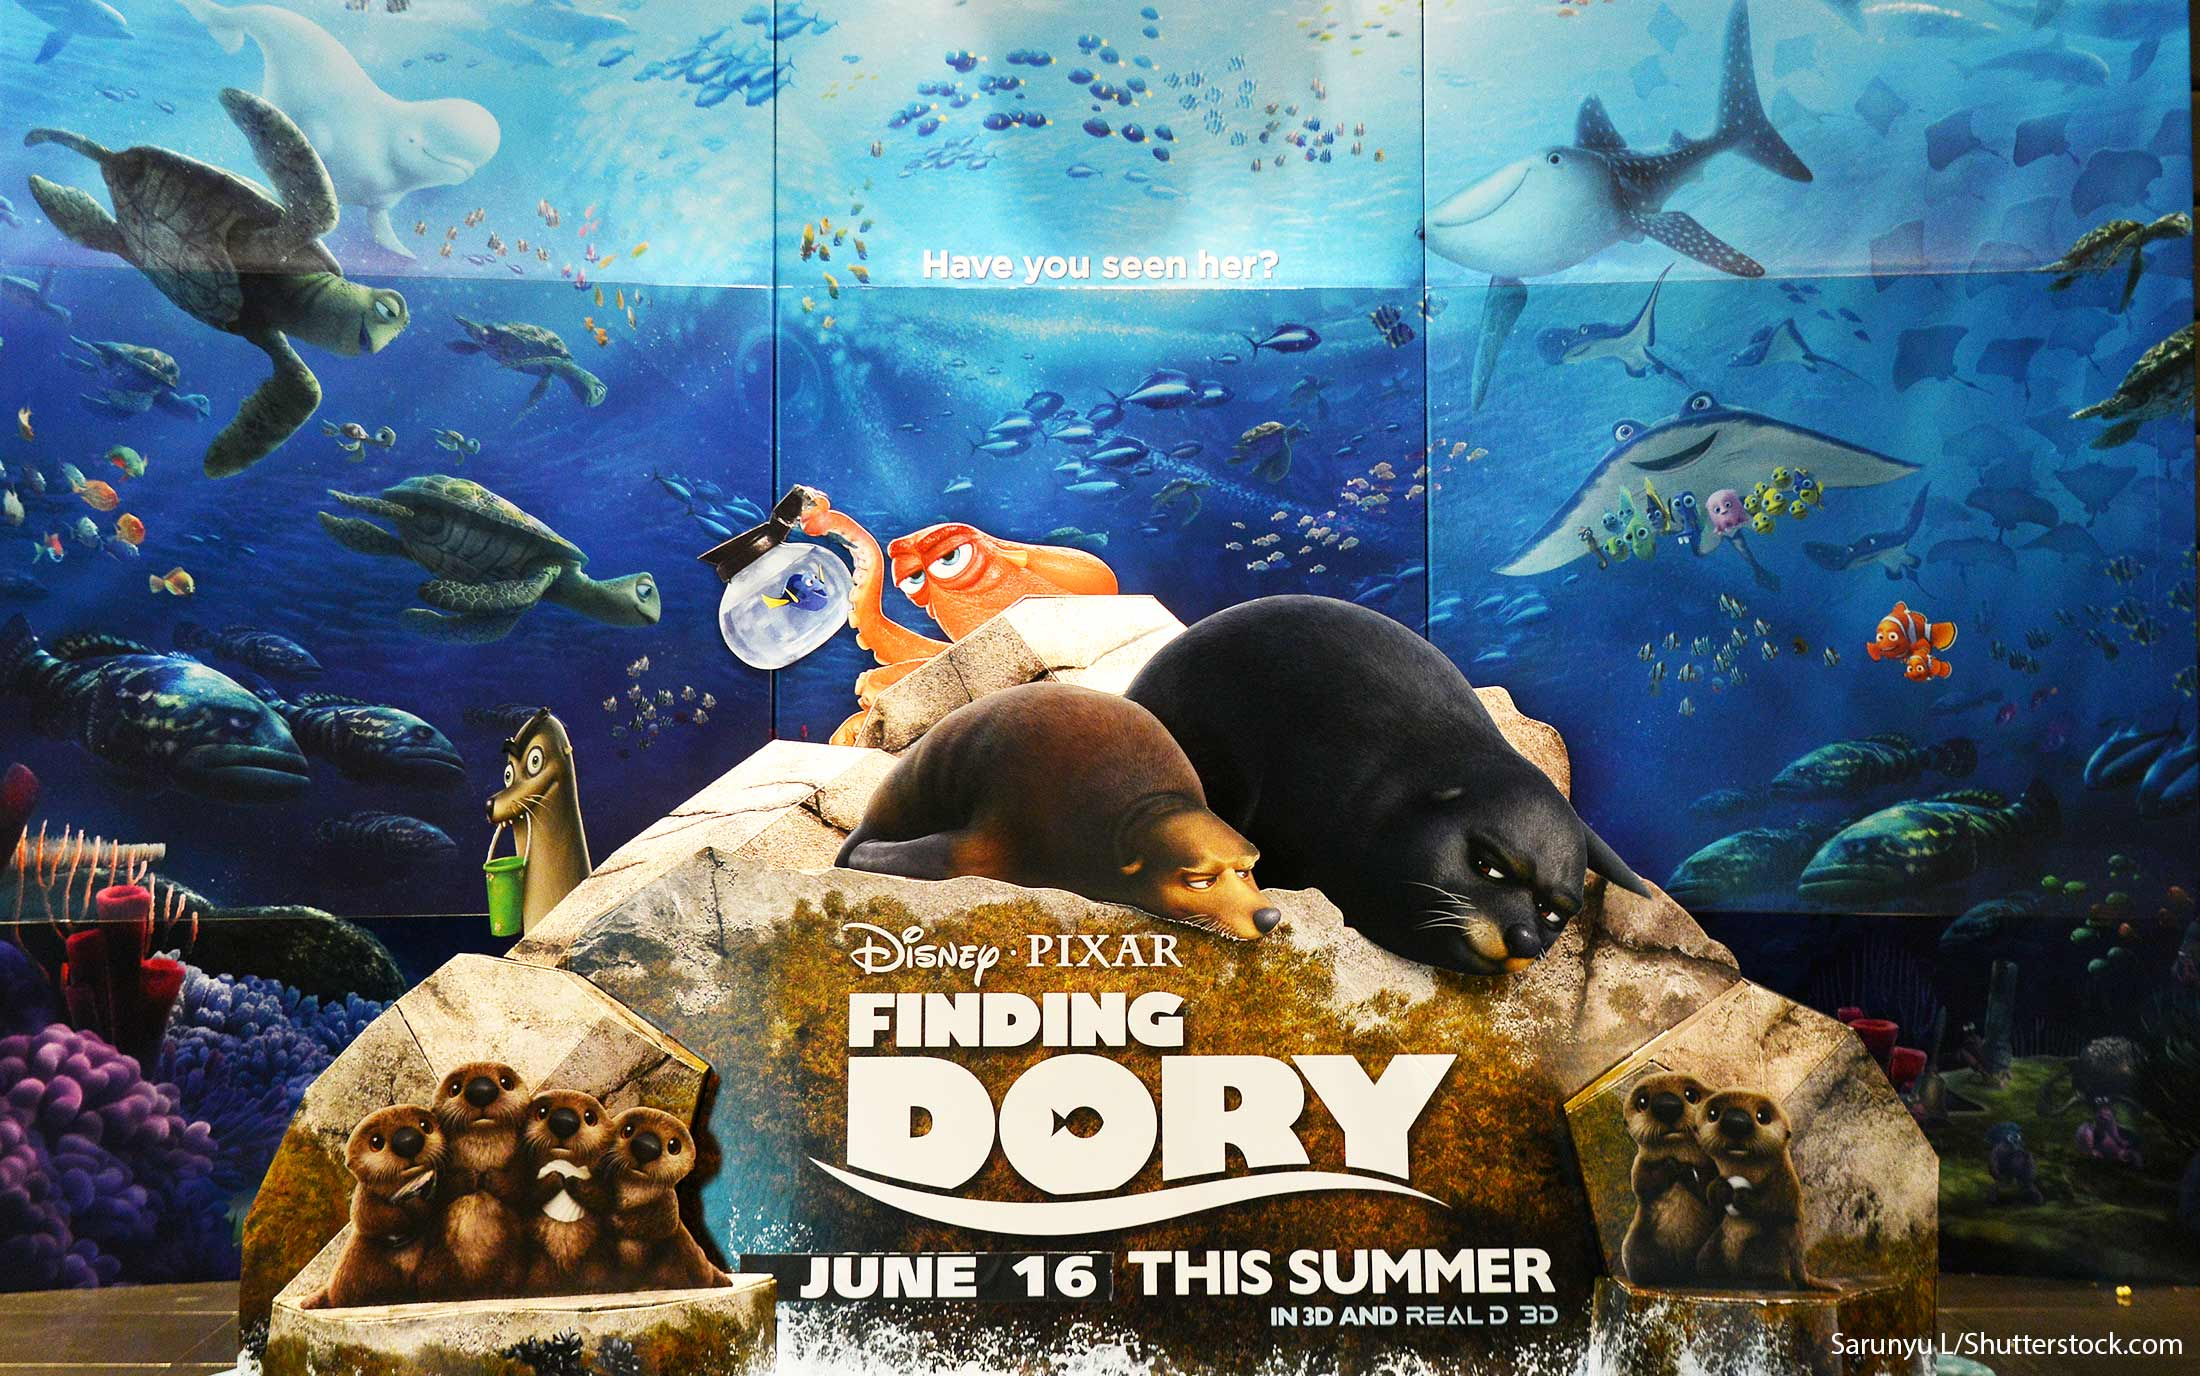 'Finding Dory' movie